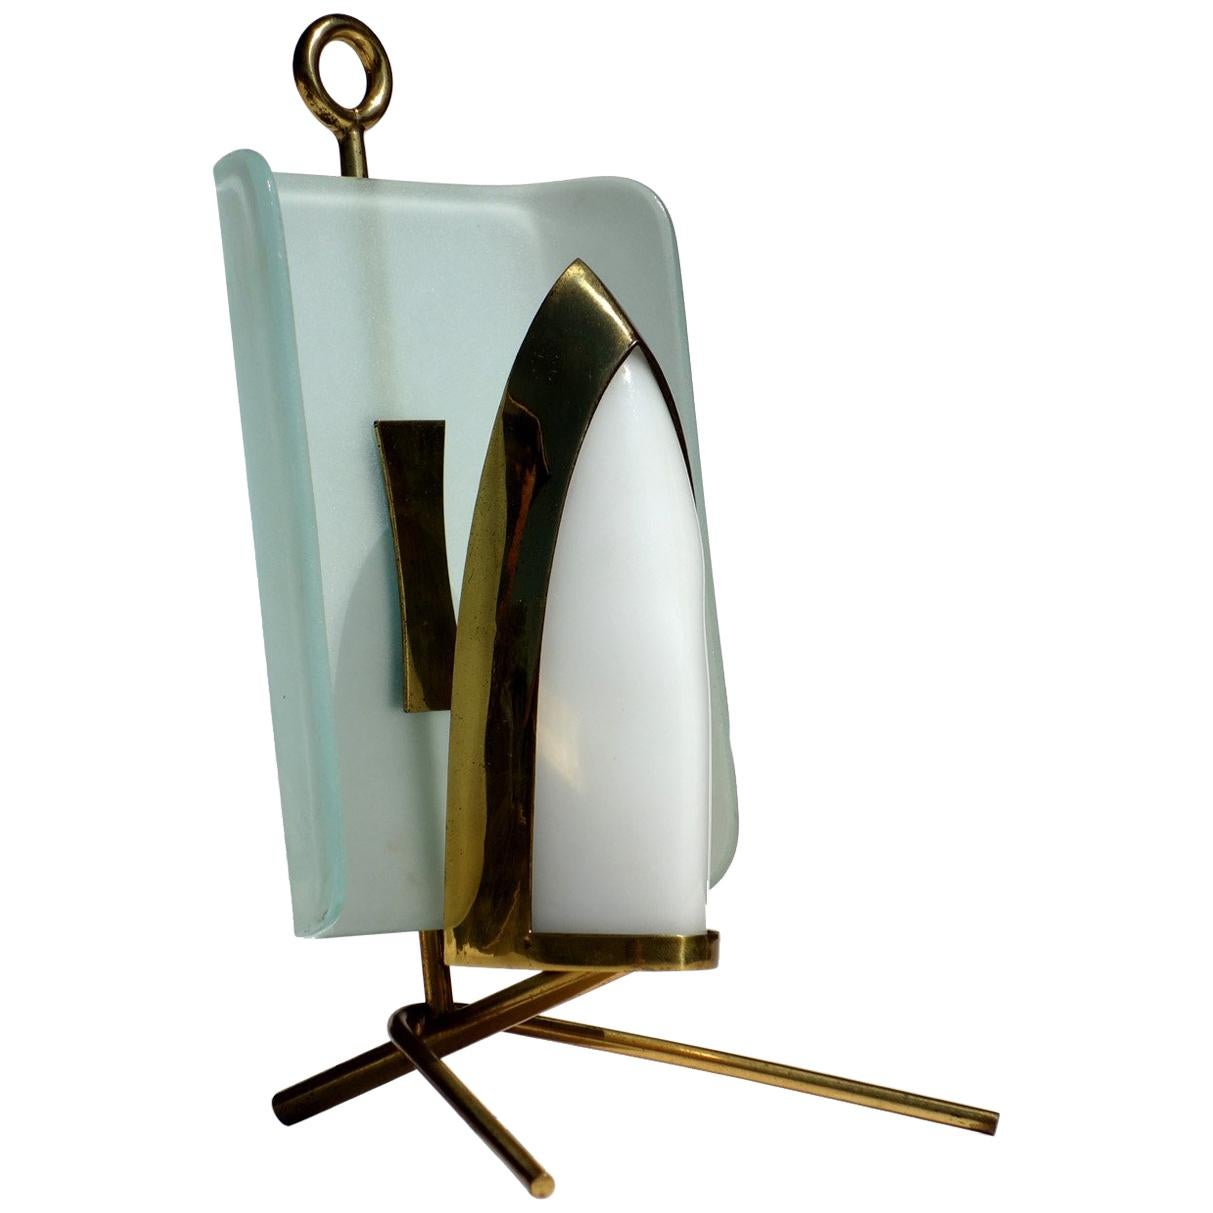 1950s by Arredoluce Italian Design Midcentury Table Lamp